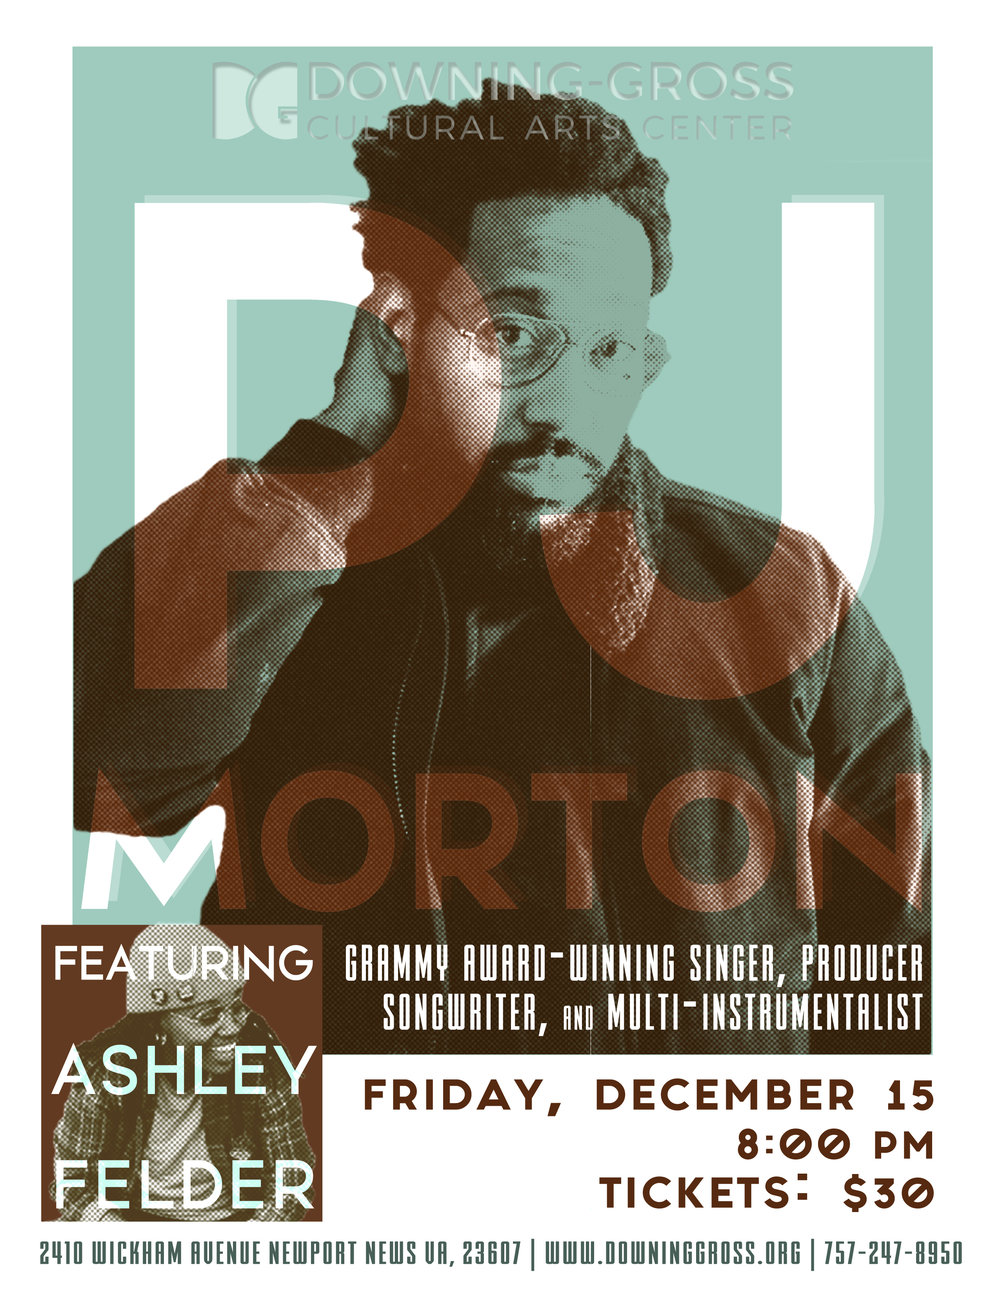 Join us for an unforgettable night of music with one of our hidden gems, Ashley Felder and Grammy Award-winning singer, songwriter, producer, multi-instrumentalist and Maroon 5 keyboardist PJ Morton